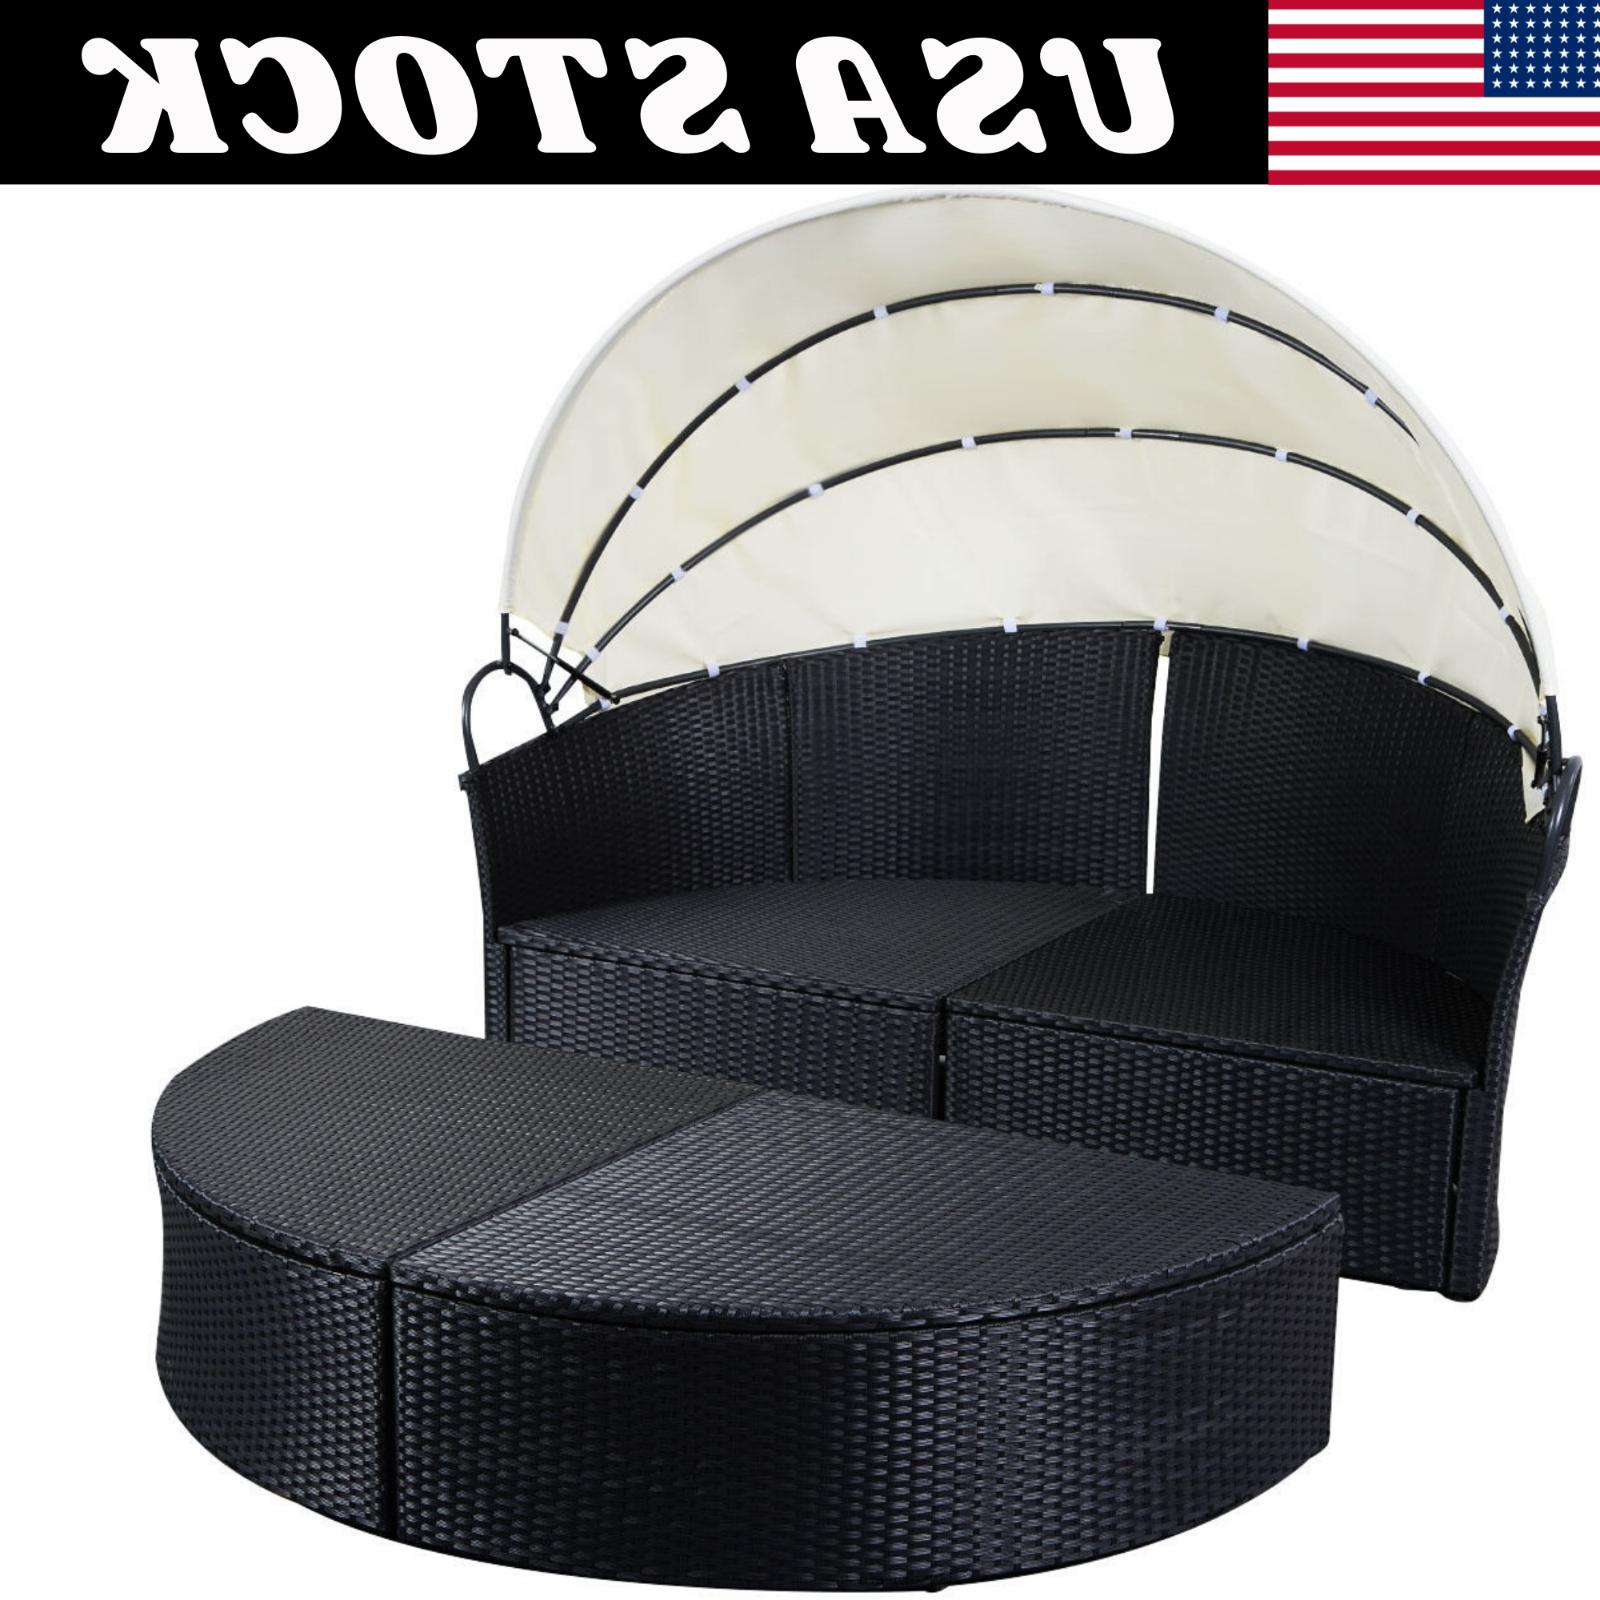 Outdoor Rattan Furniture Round Canopy Daybed Black/White